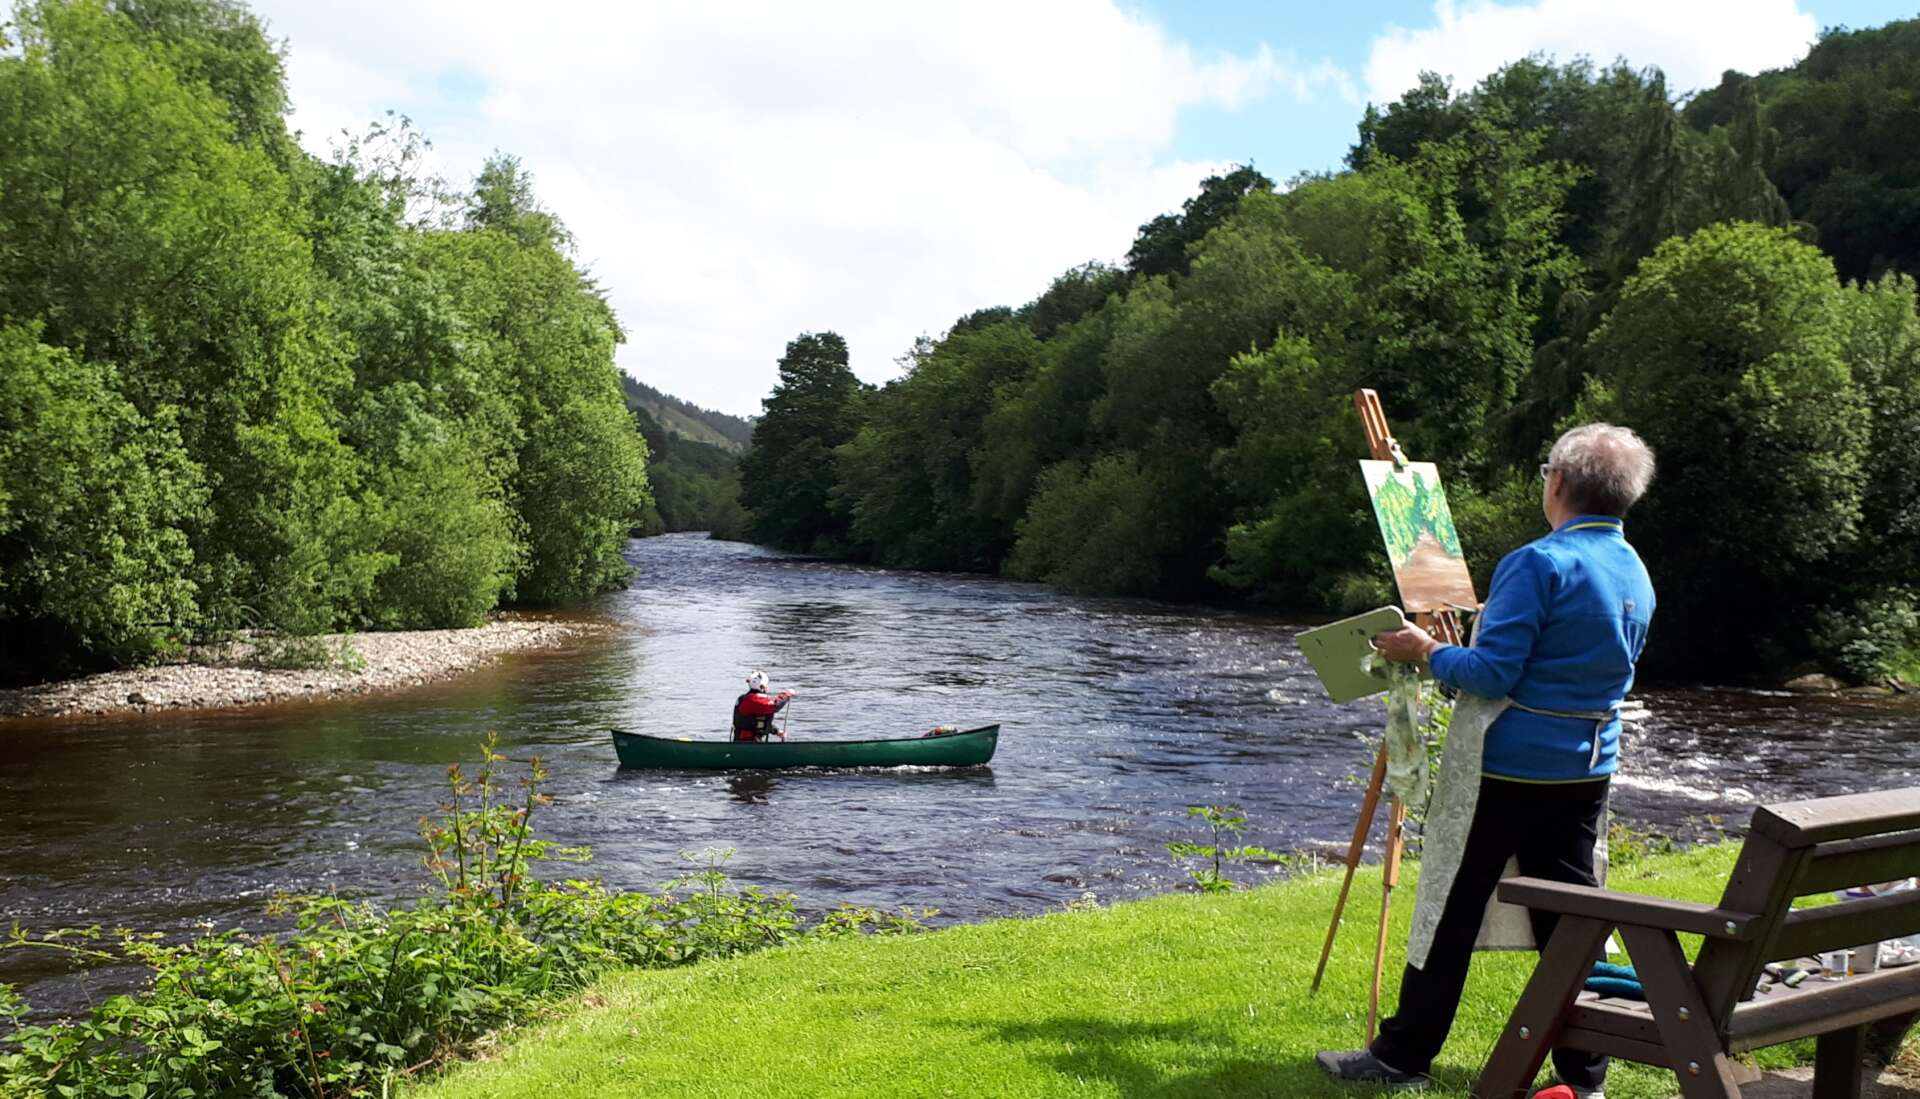 Artist painting the view down the Avoca River. Rod Coyne's August 2018 Painting Workshop promises quality time channeling poet laureate Thomas Moore down by the Meetings of the Waters.